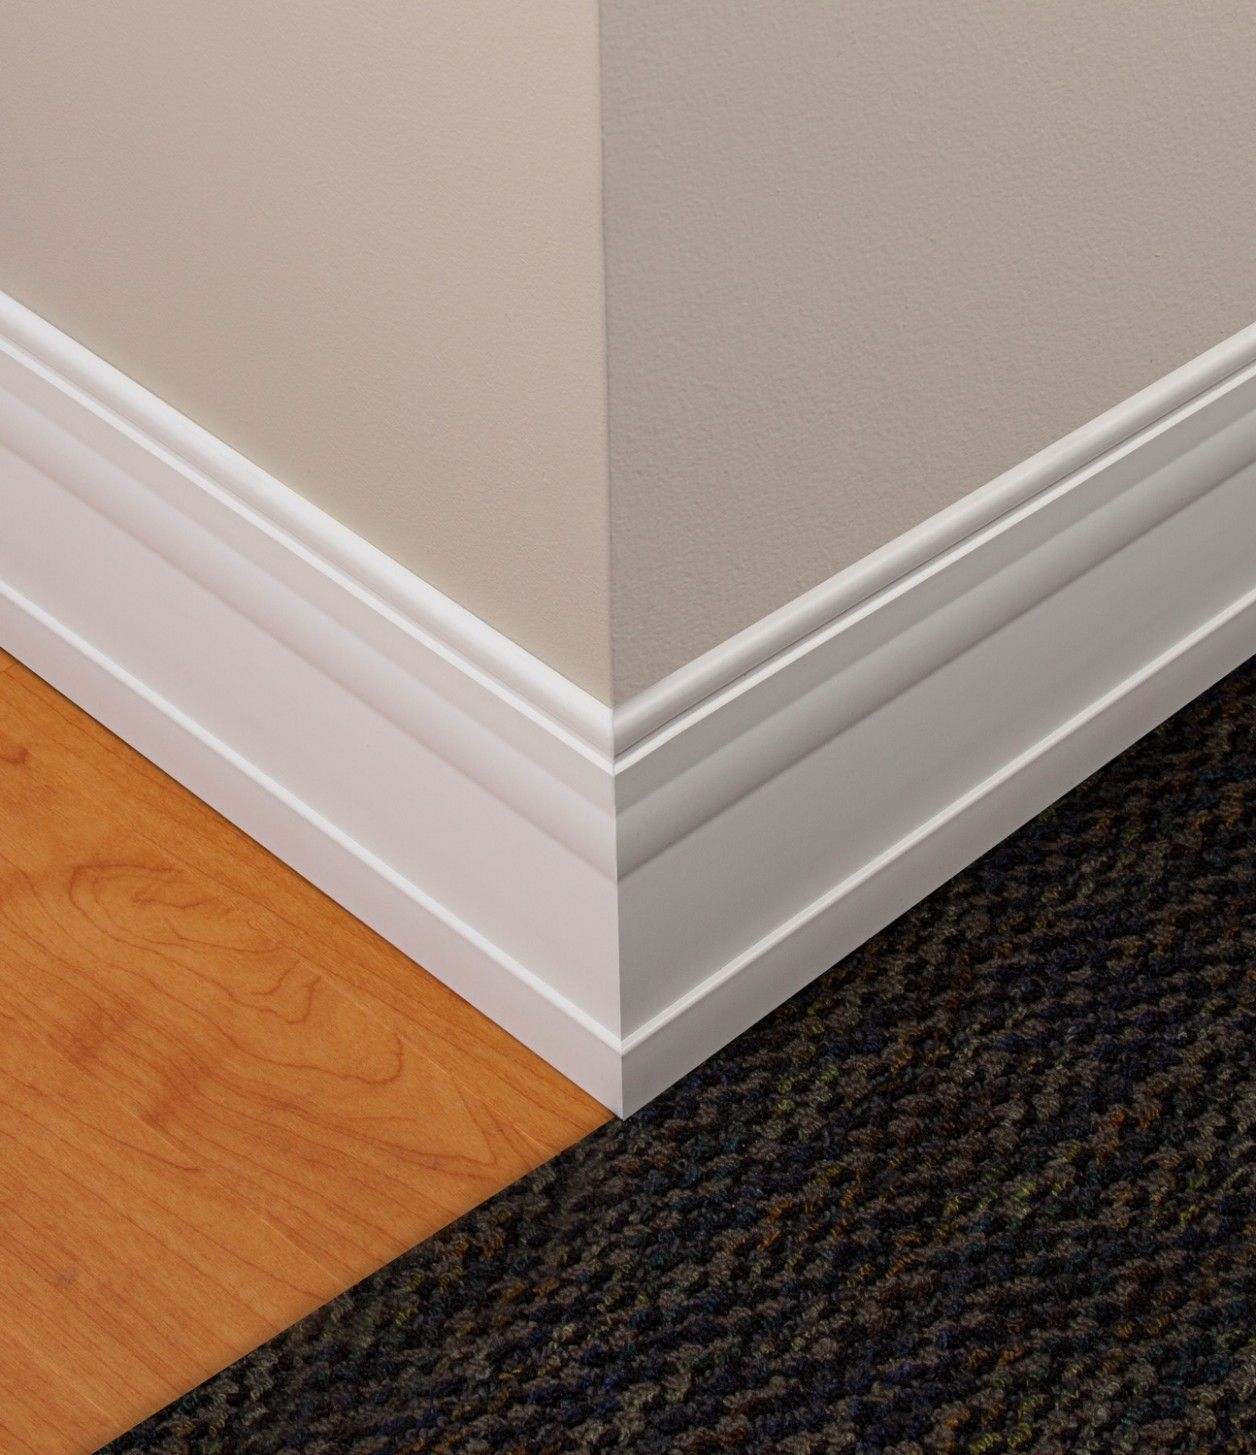 baseboard molding home depot gorgeous baseboards styles. Black Bedroom Furniture Sets. Home Design Ideas